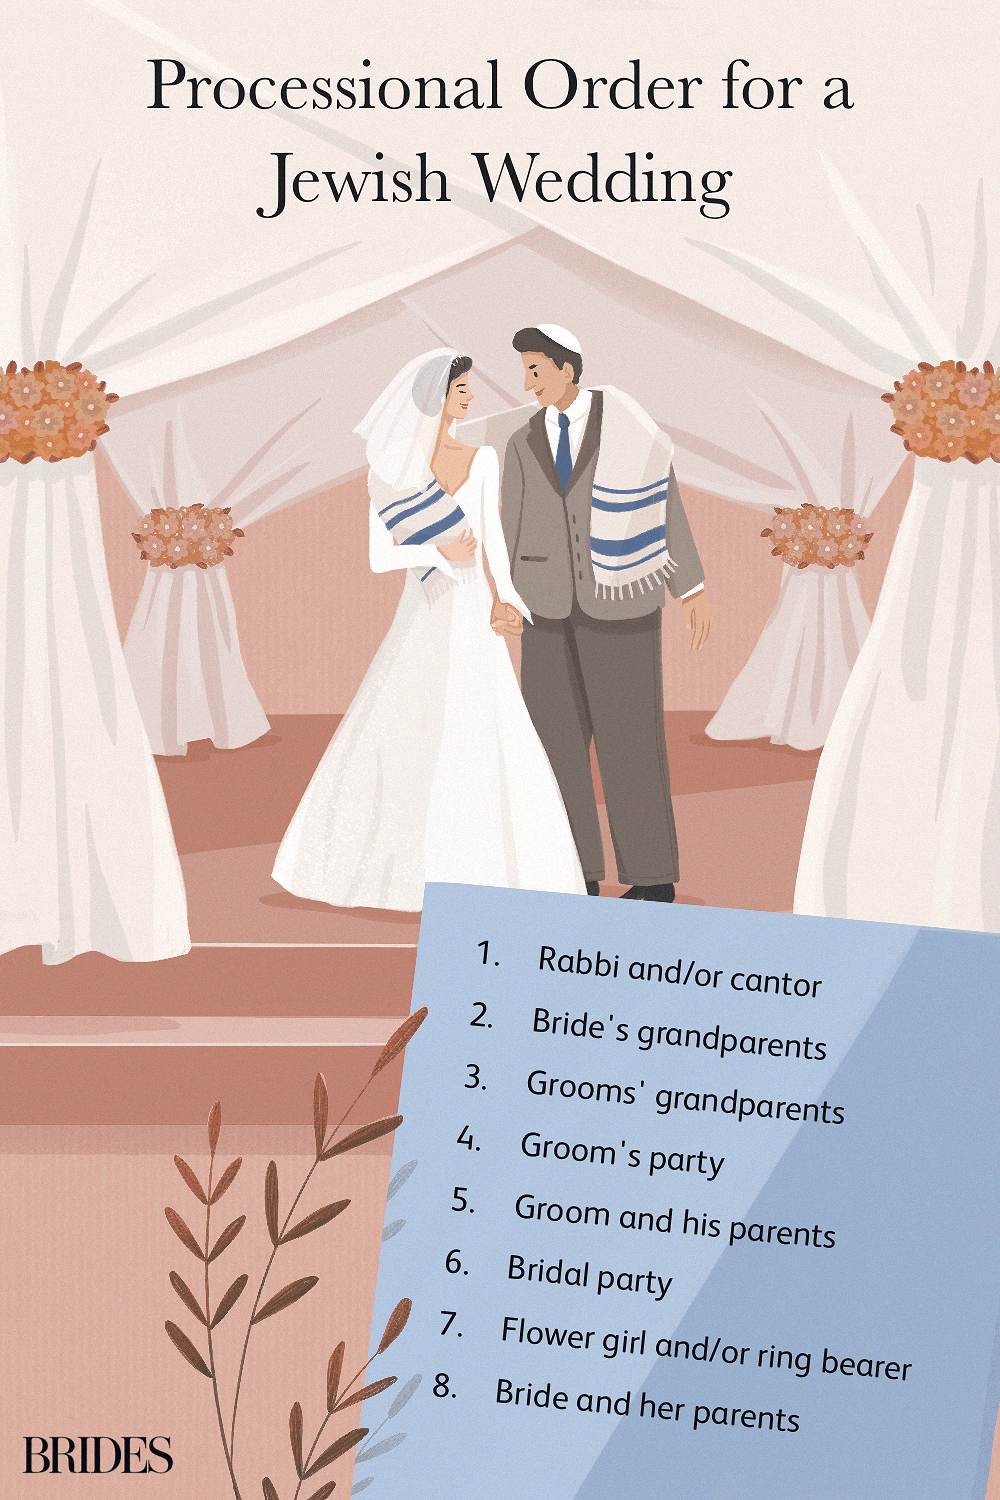 Processional Order for a Jewish Wedding